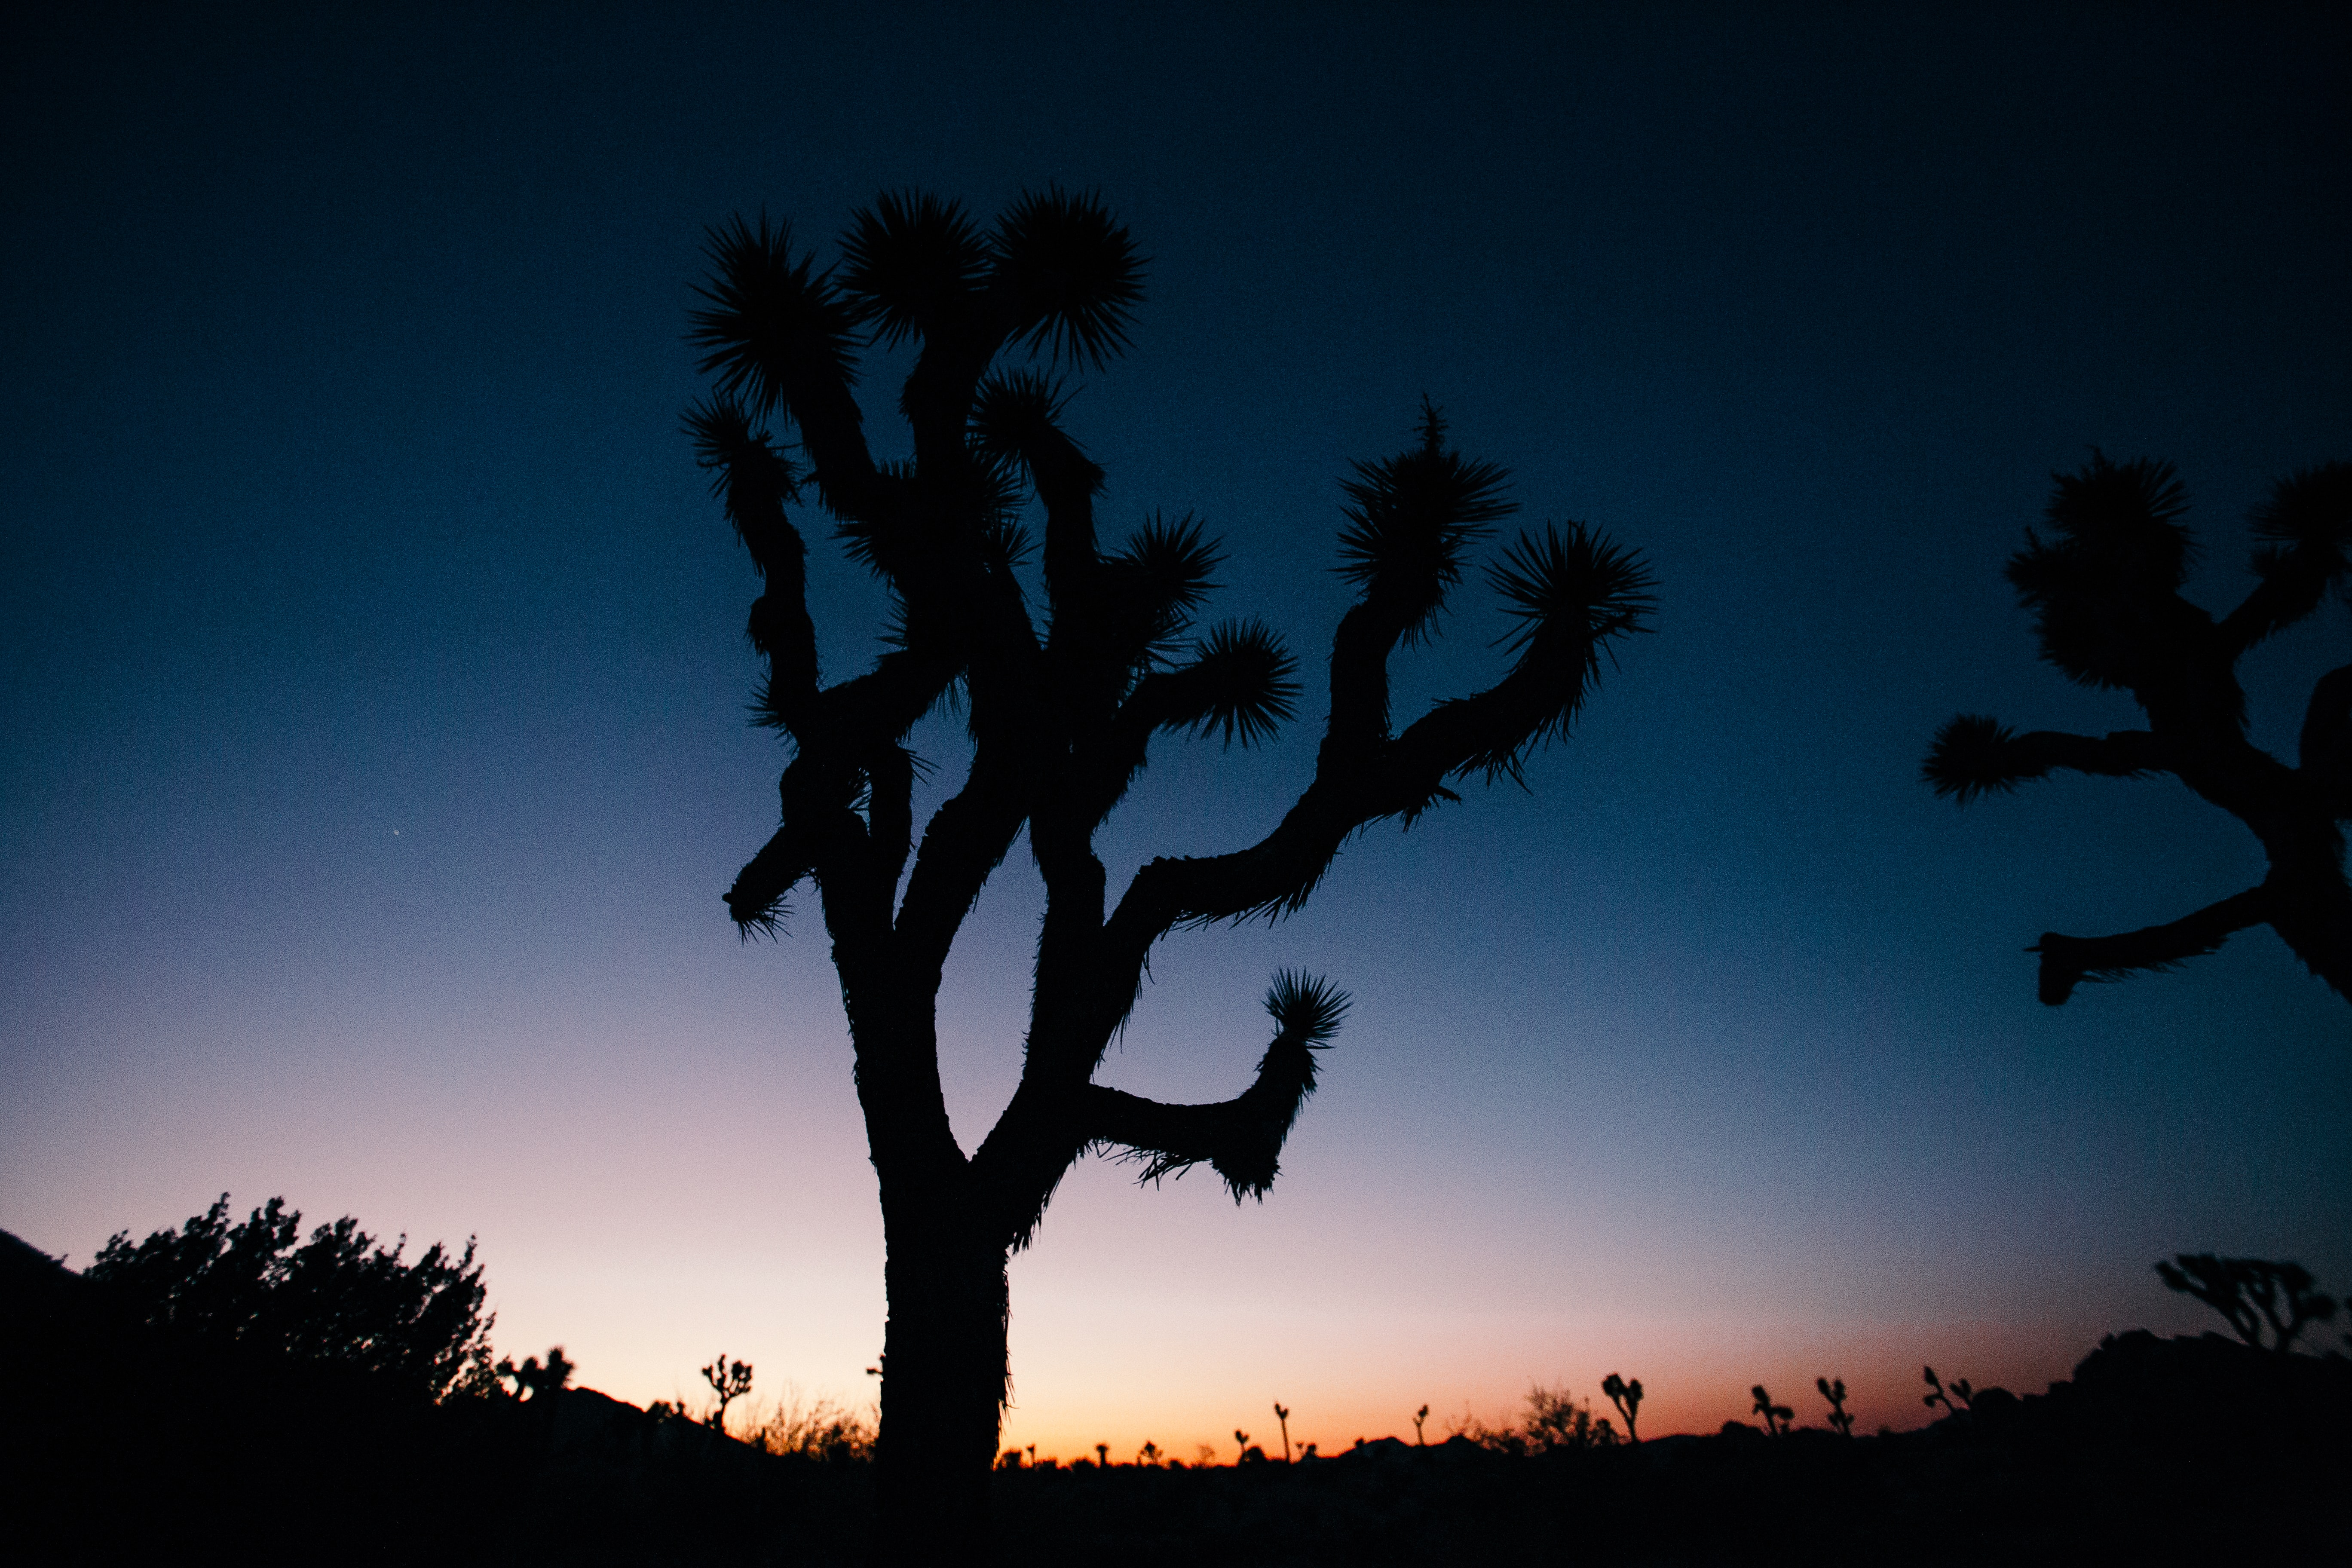 silhouette photograph of cactus